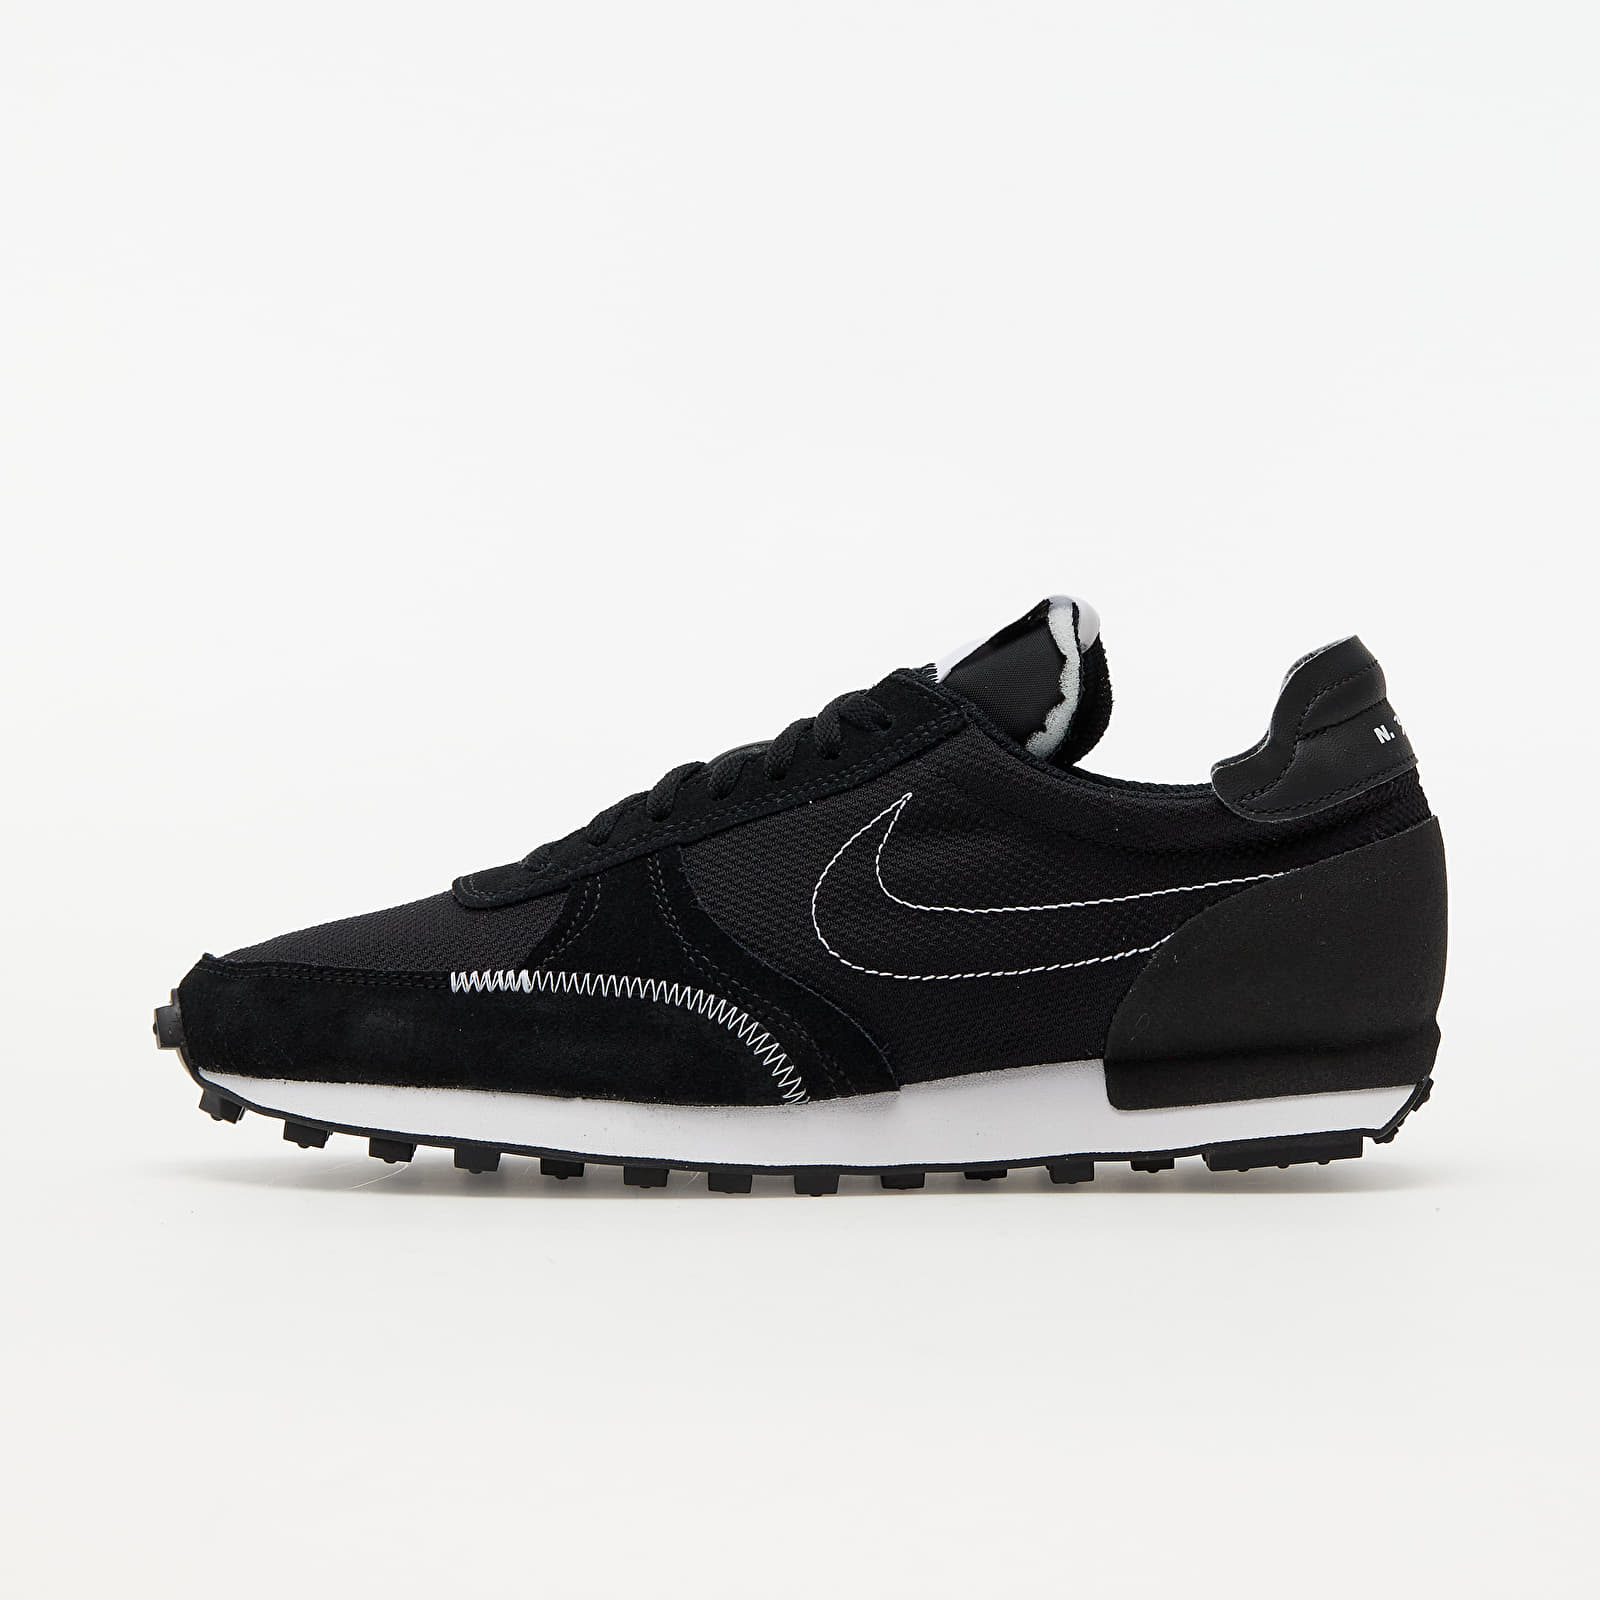 Nike Daybreak-Type Black/ White EUR 40.5